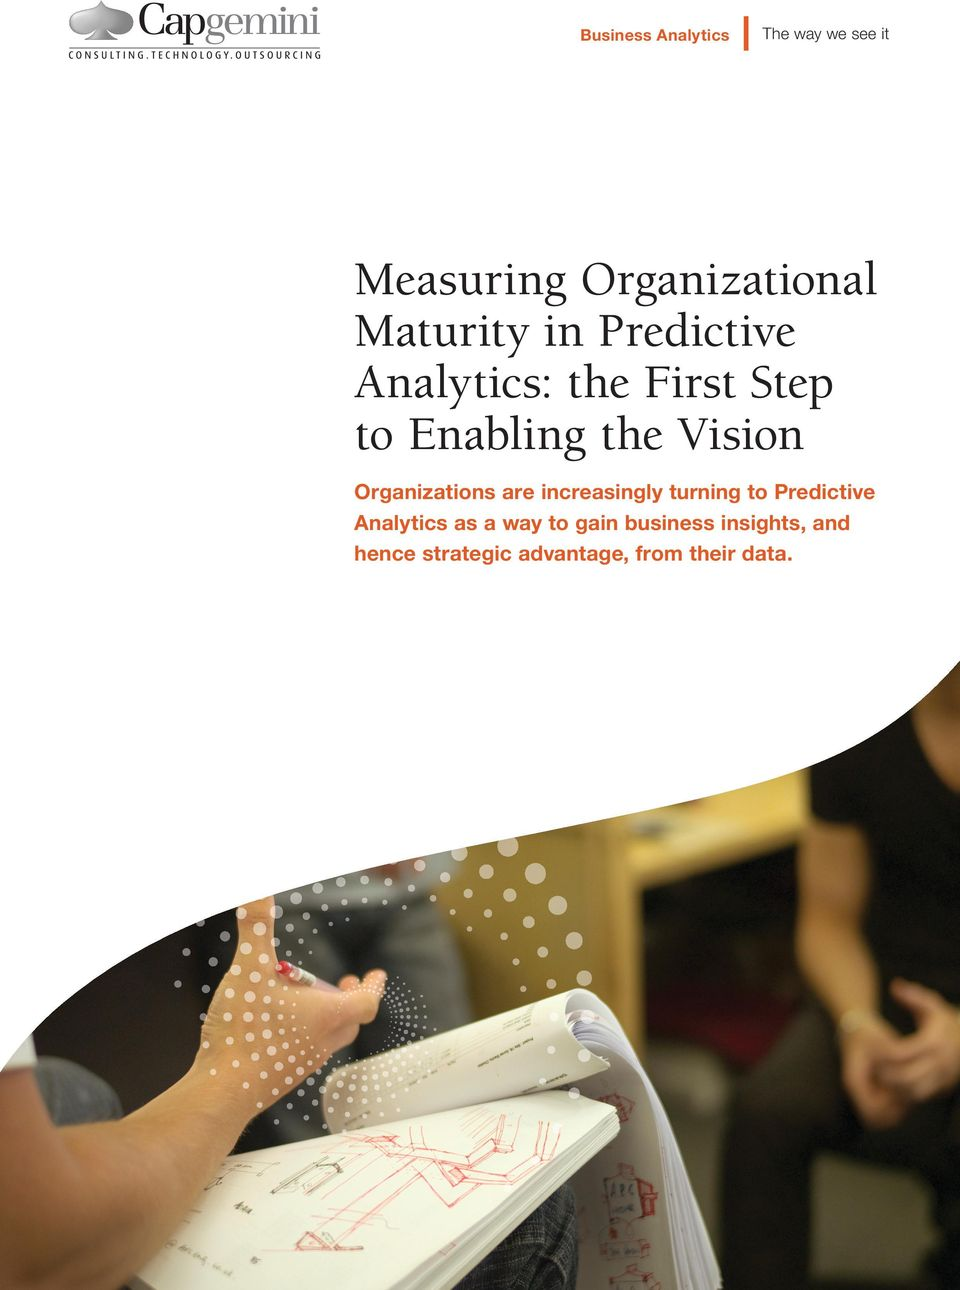 Vision Organizations are increasingly turning to Predictive Analytics